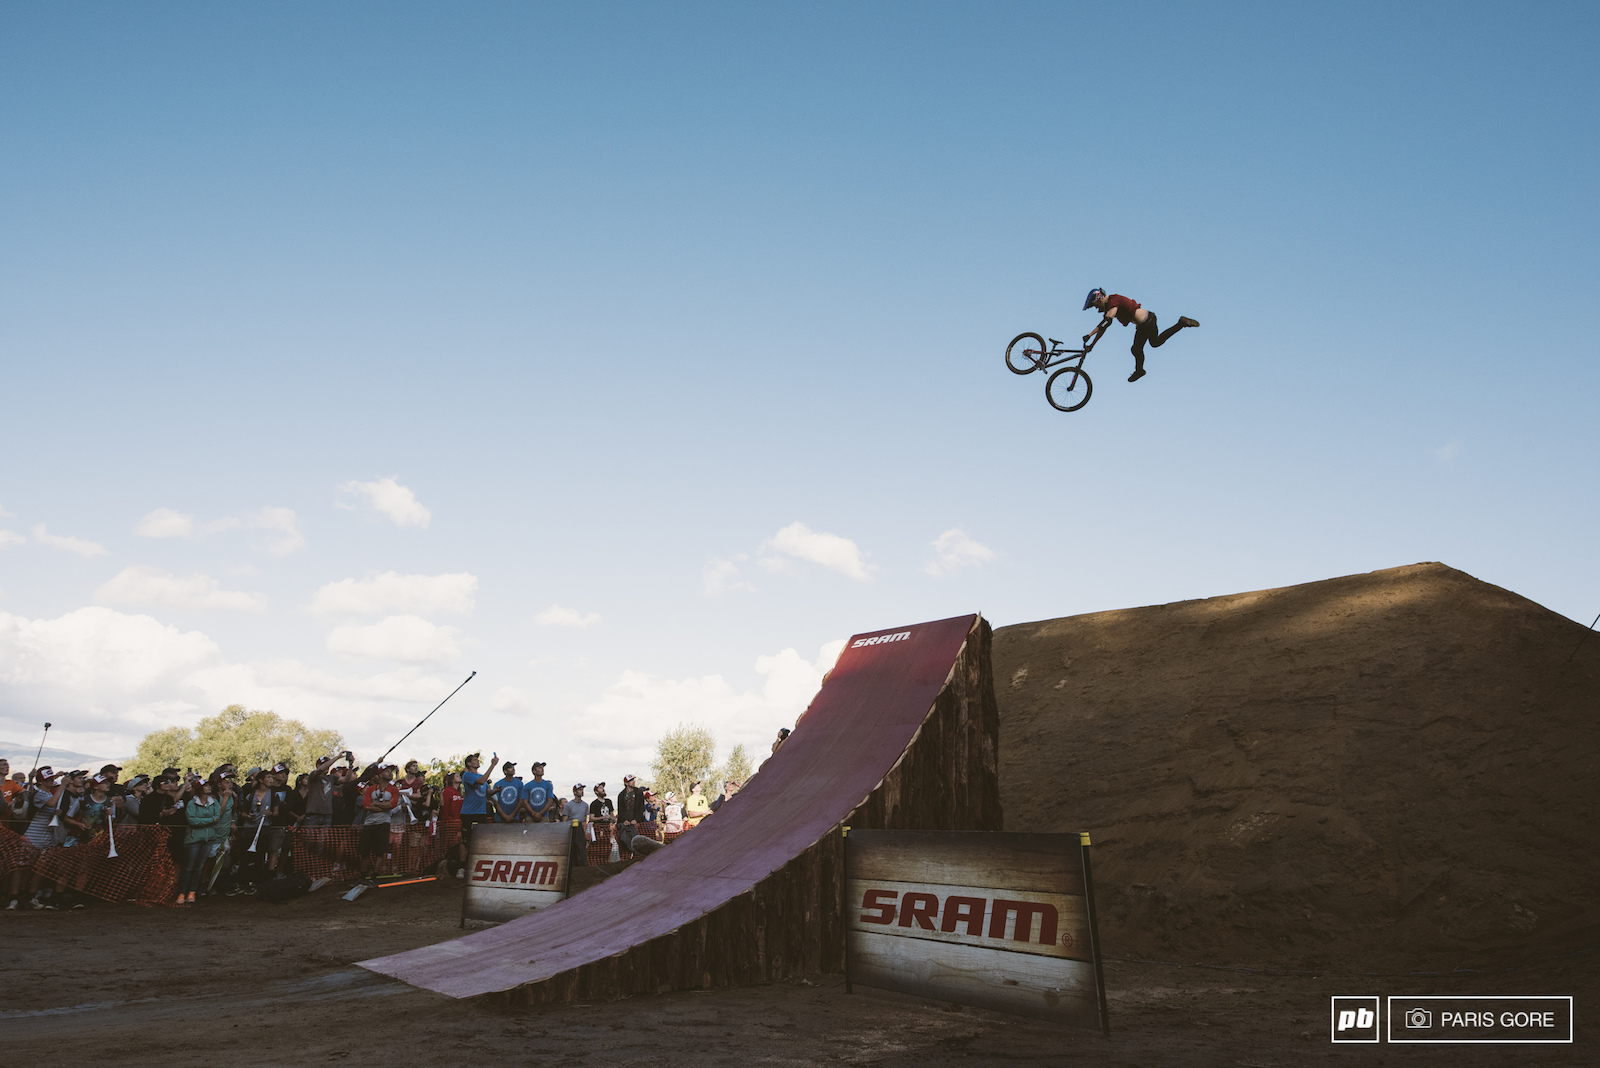 Martin Soderstrom 360 Double Tailwhip over the final booter proving that he is back and going to be a regular threat.